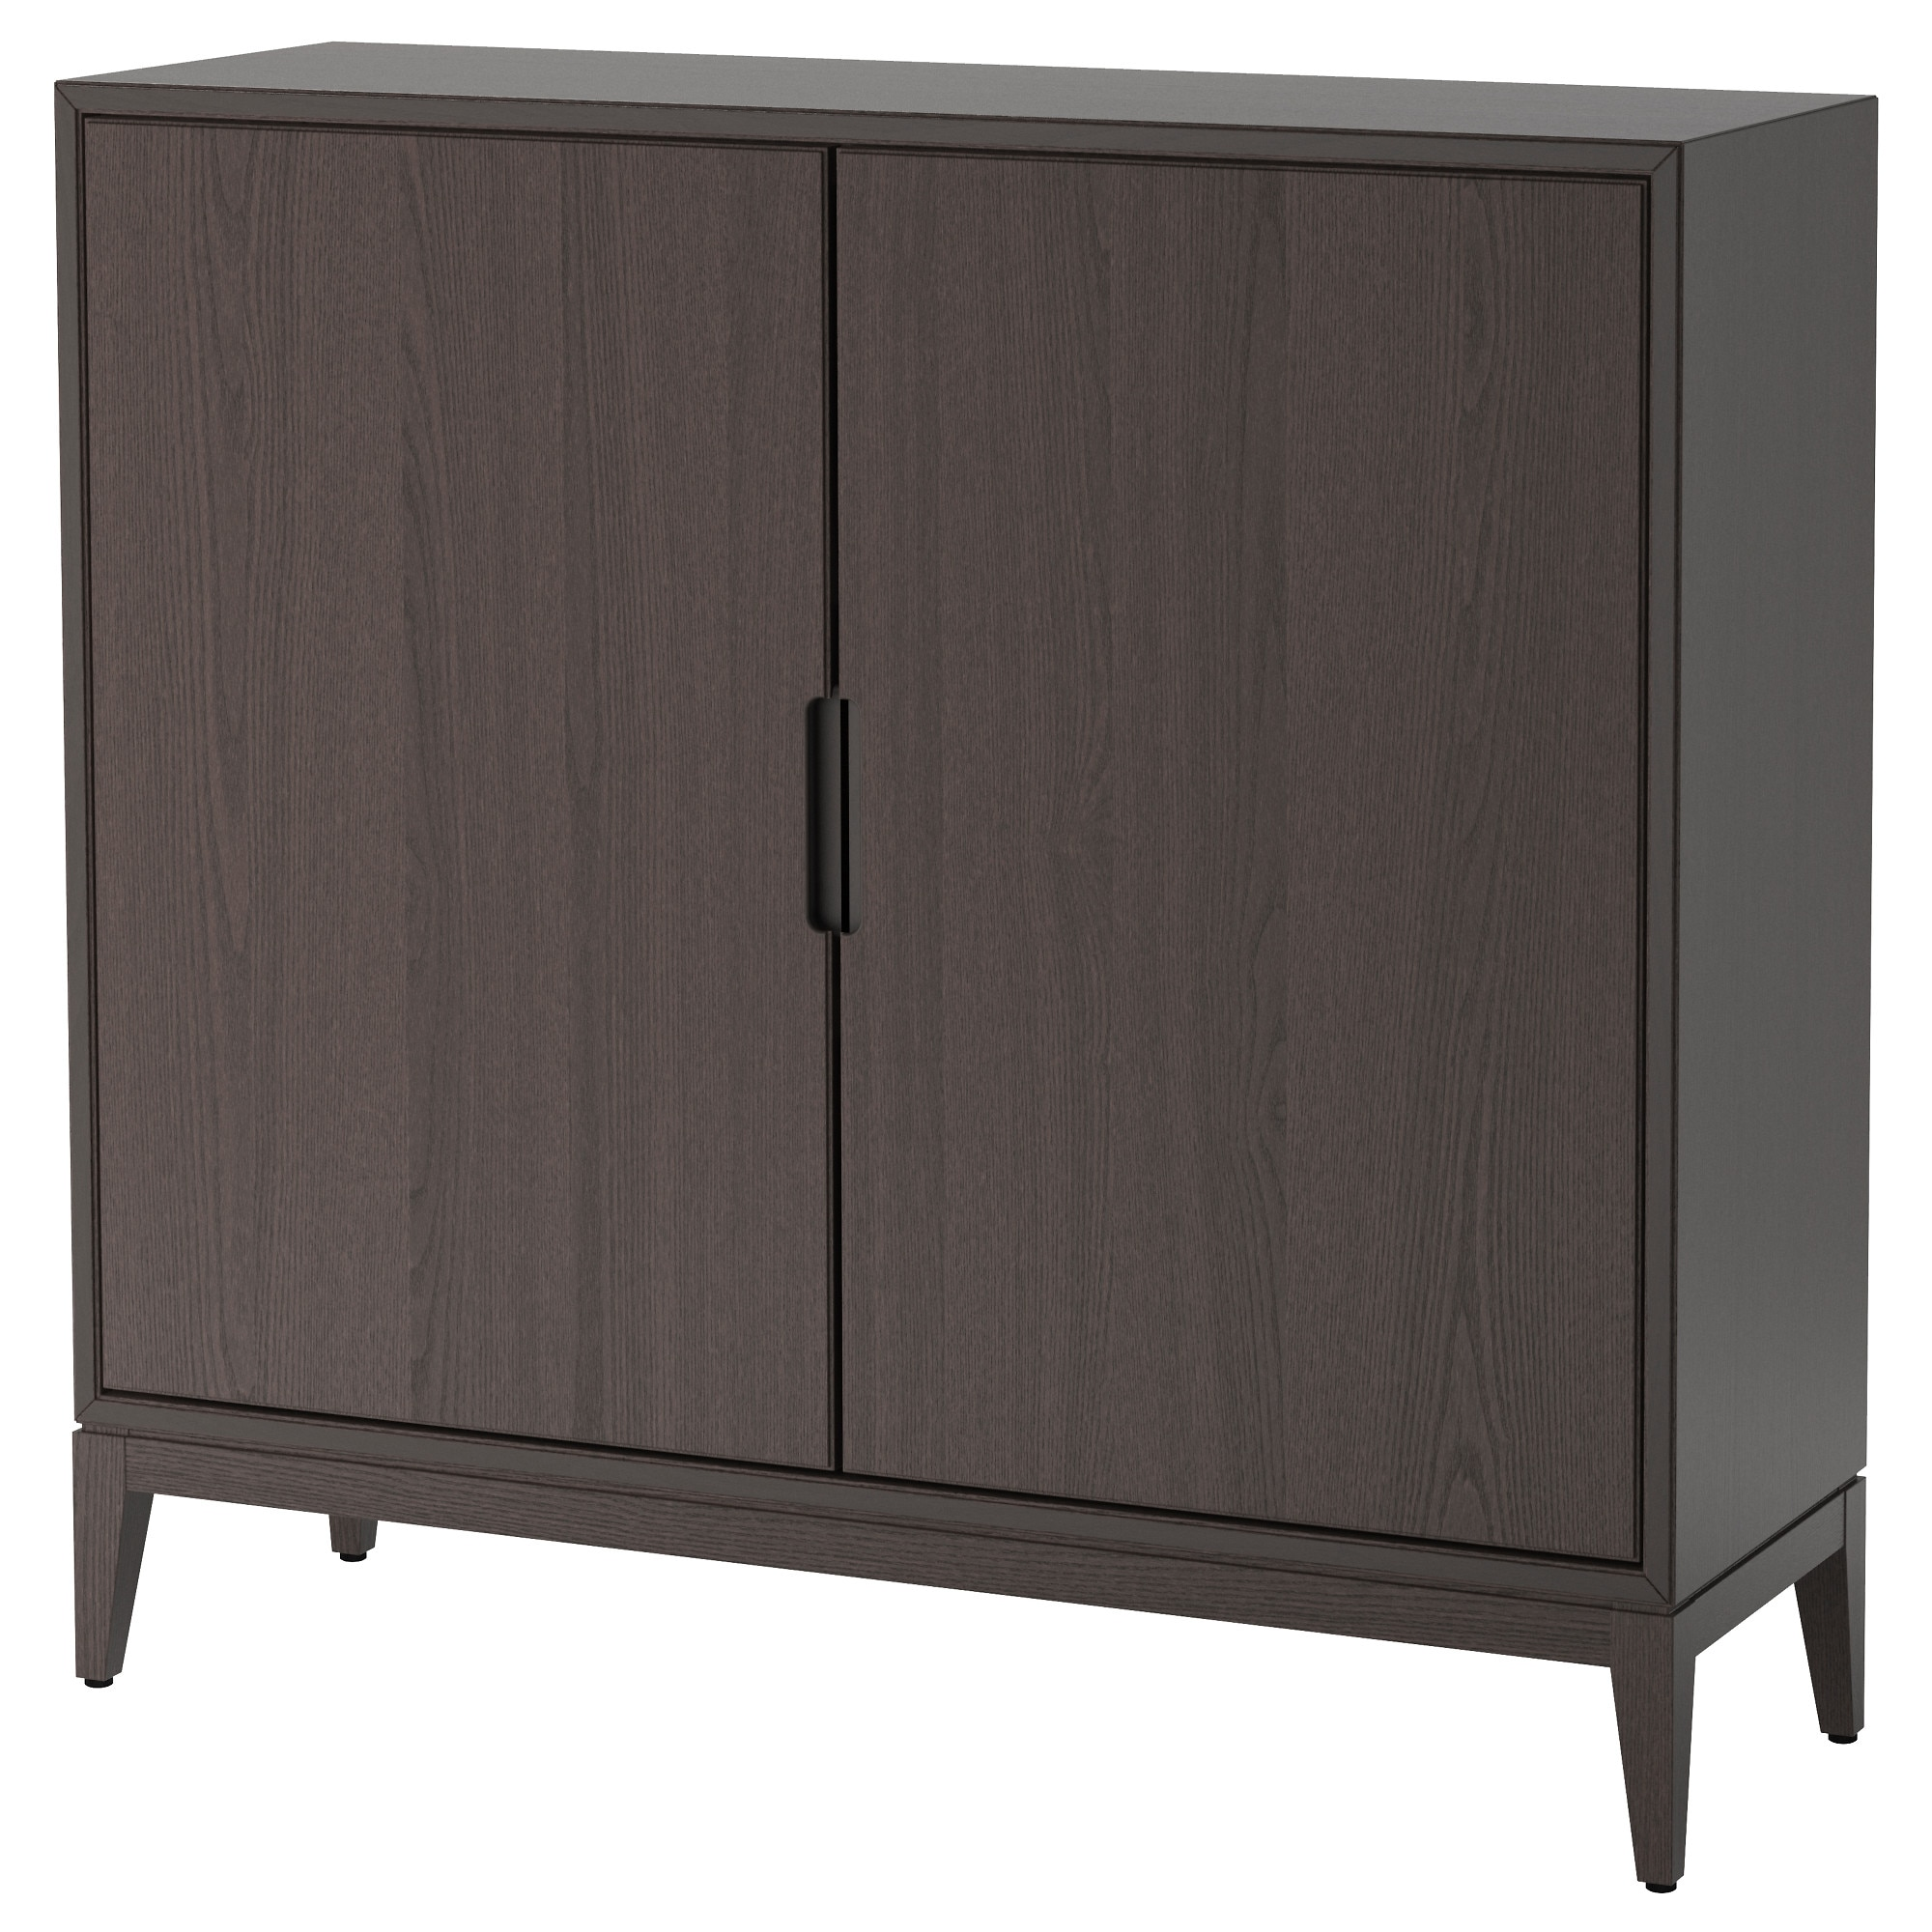 exceptional ikea cube de rangement 6 cube rangement ikea 03221201. Black Bedroom Furniture Sets. Home Design Ideas